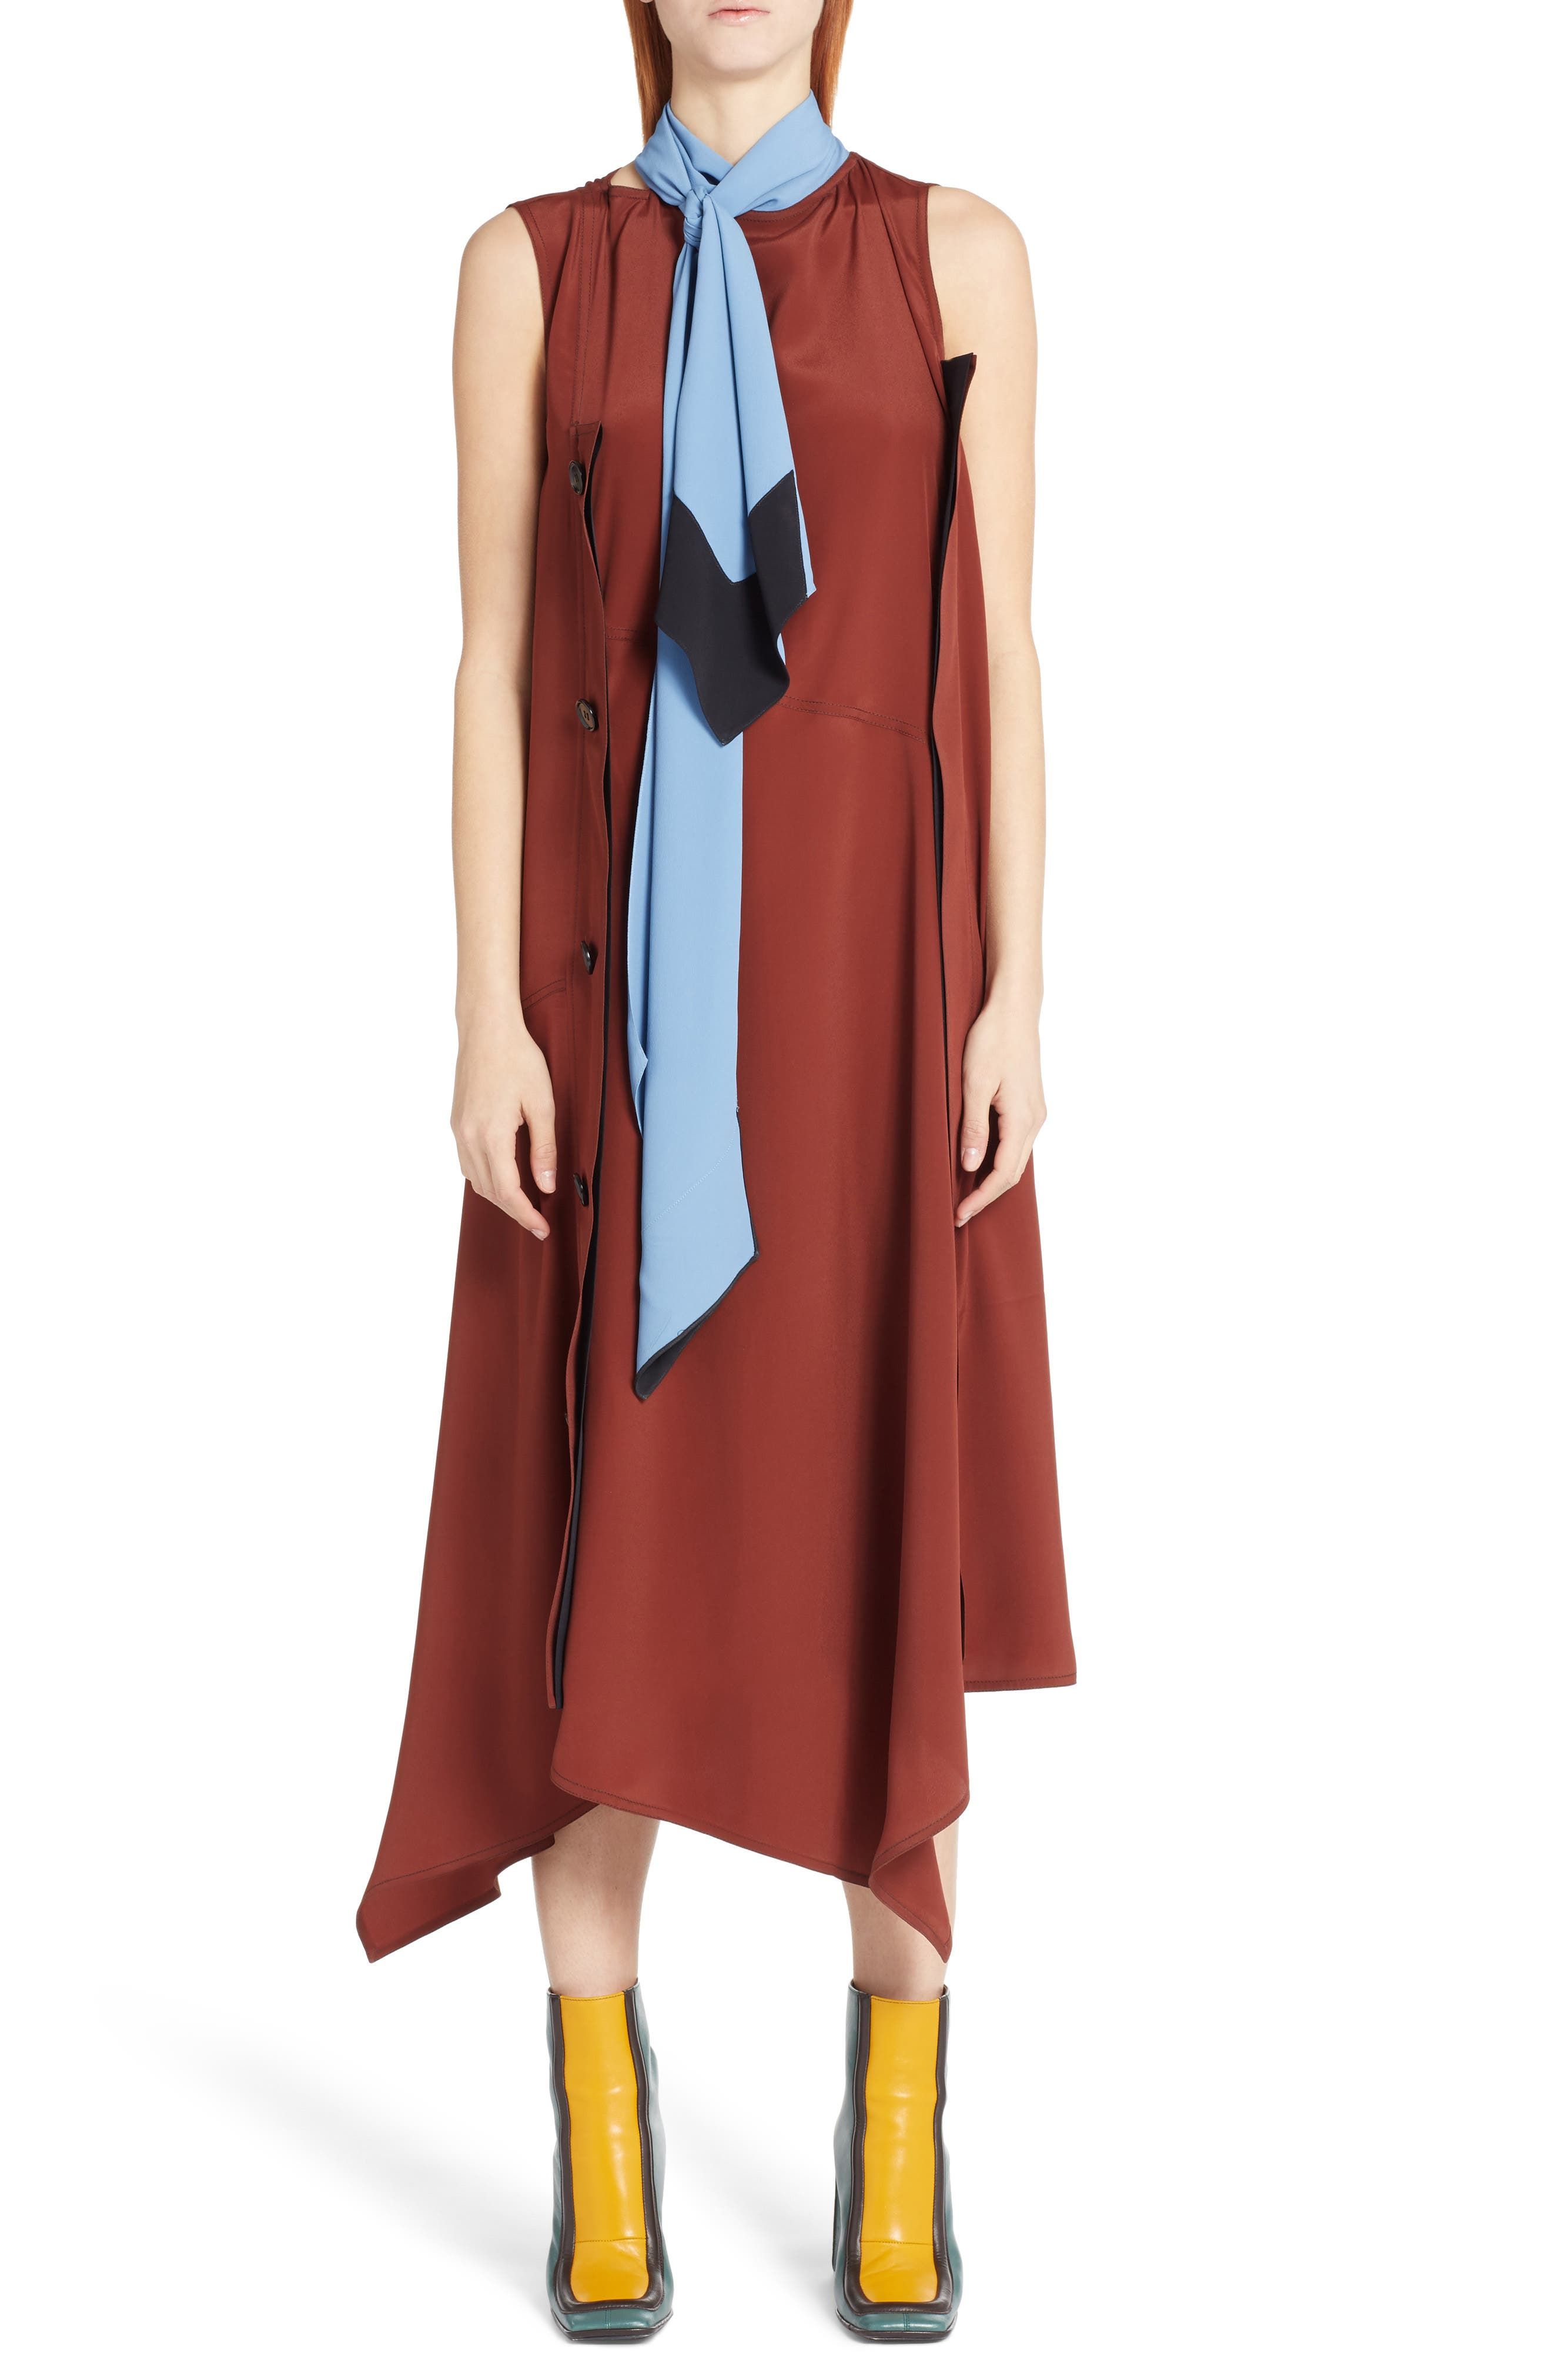 Alternate Image 1 Selected - Marni Tie Neck Side Button Dress